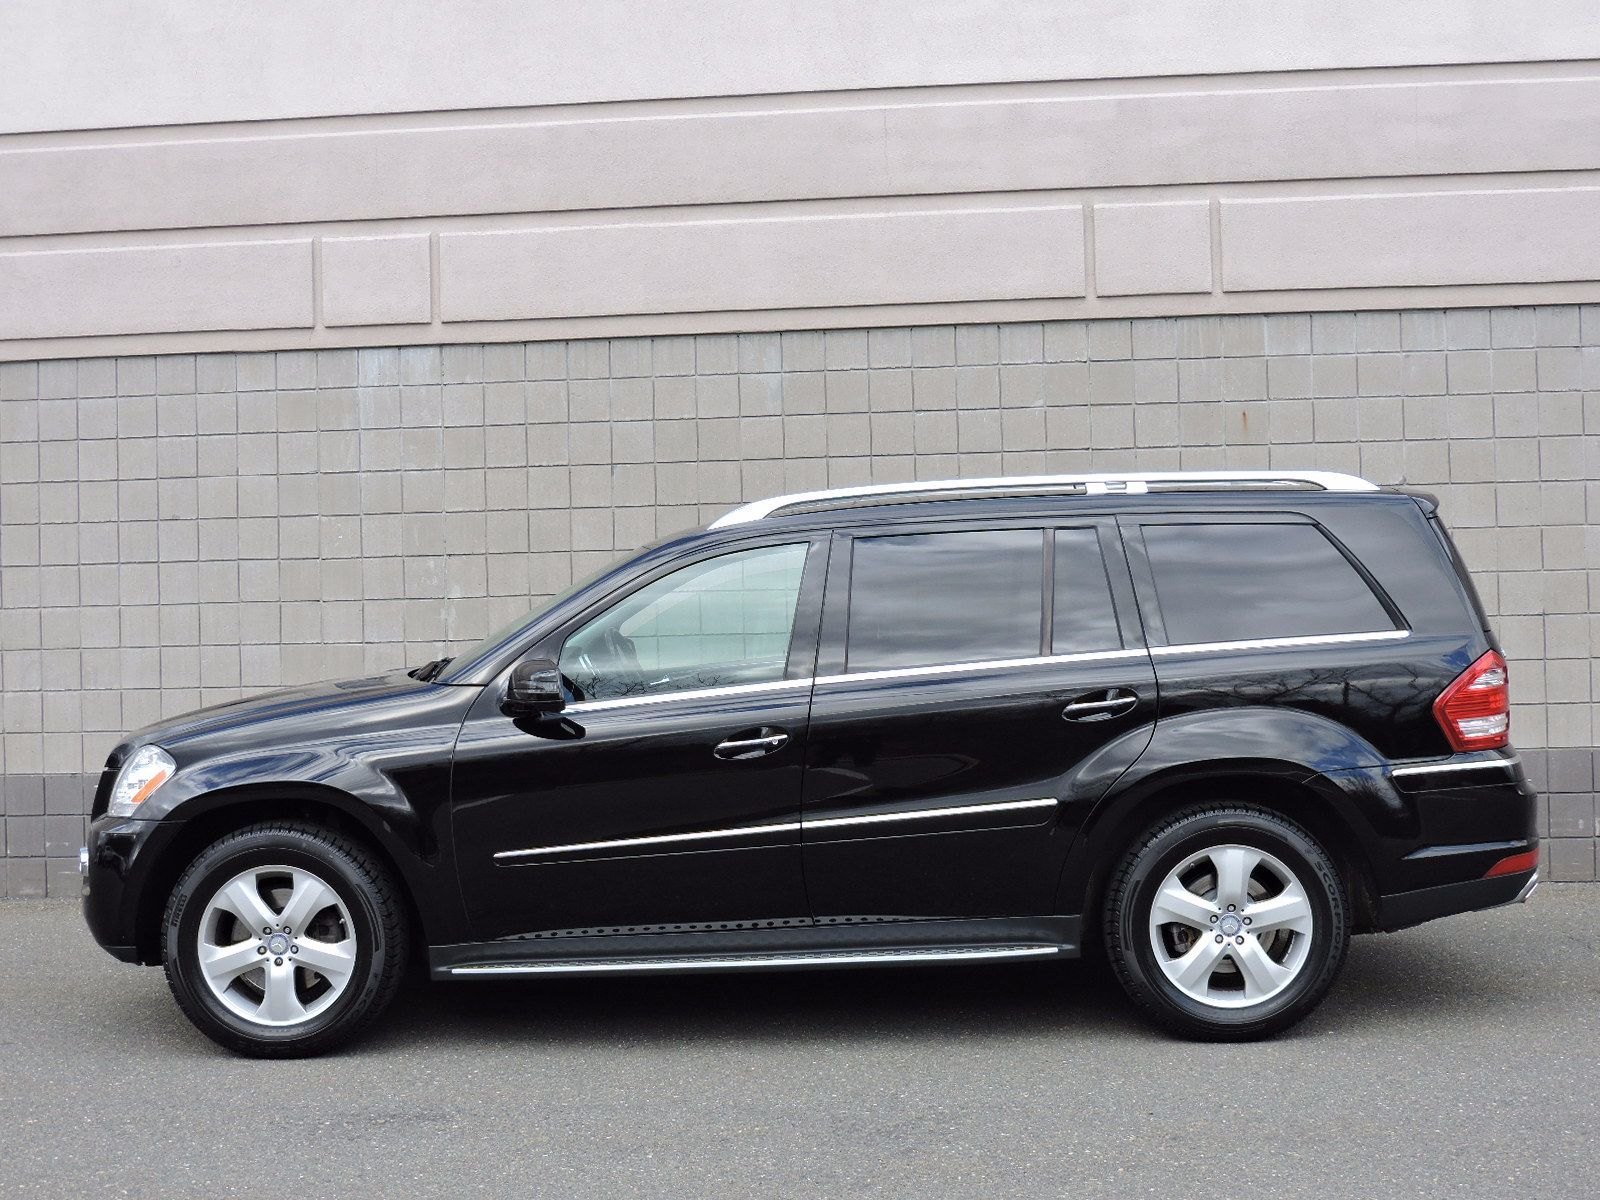 Used 2011 mercedes benz gl450 at auto house usa saugus for 2011 mercedes benz gl450 reviews